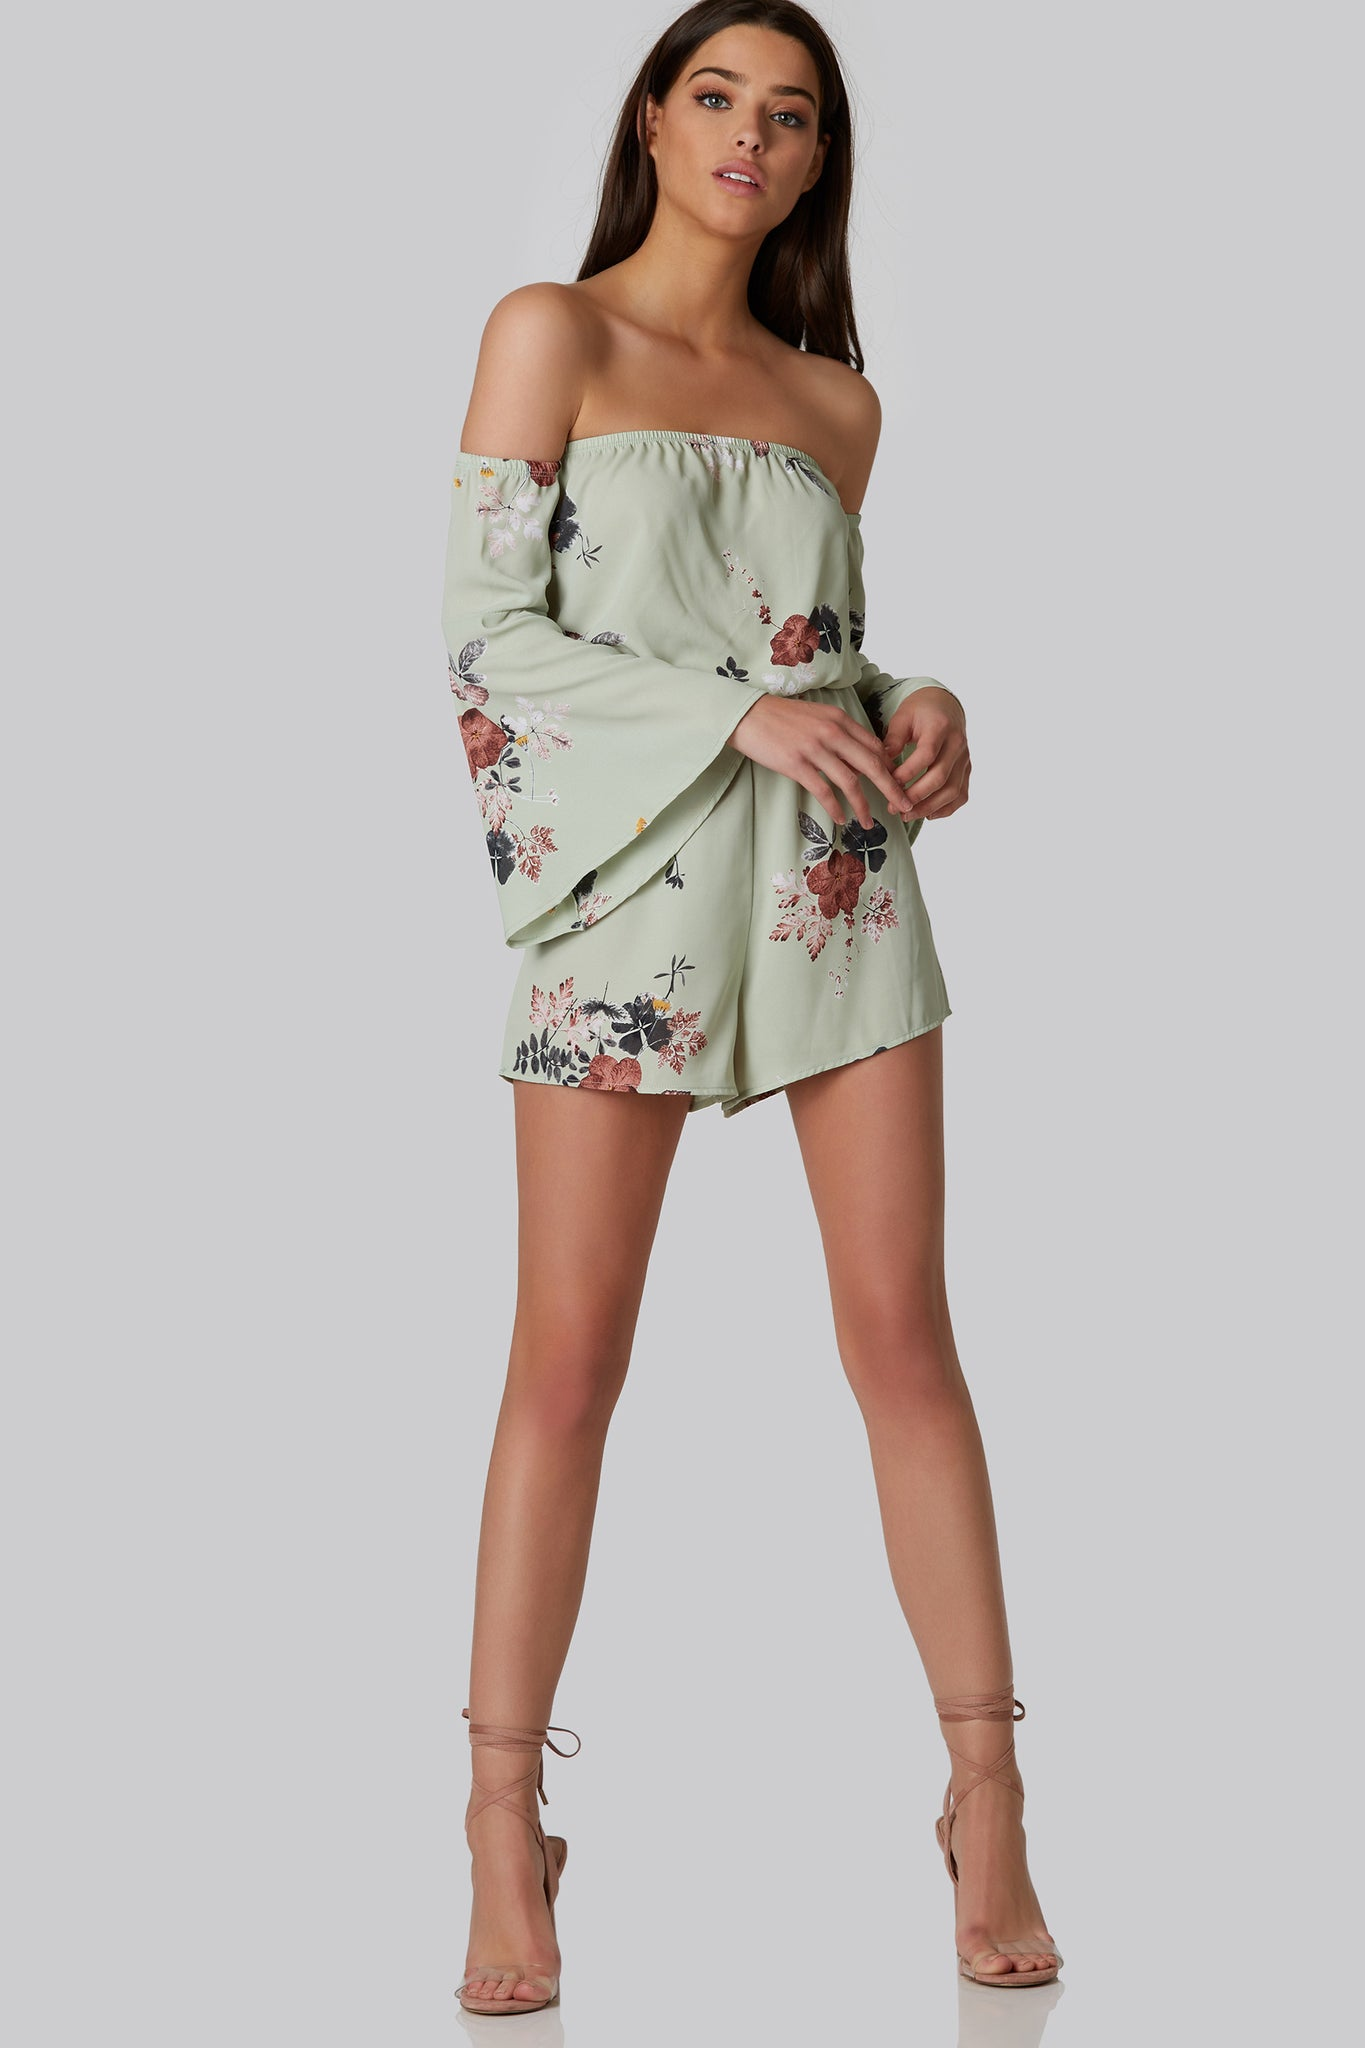 Lightweight floral printed romper with cold shoulder cut outs and bell sleeves. Flowy fit with elastic bands for comfort and fit.